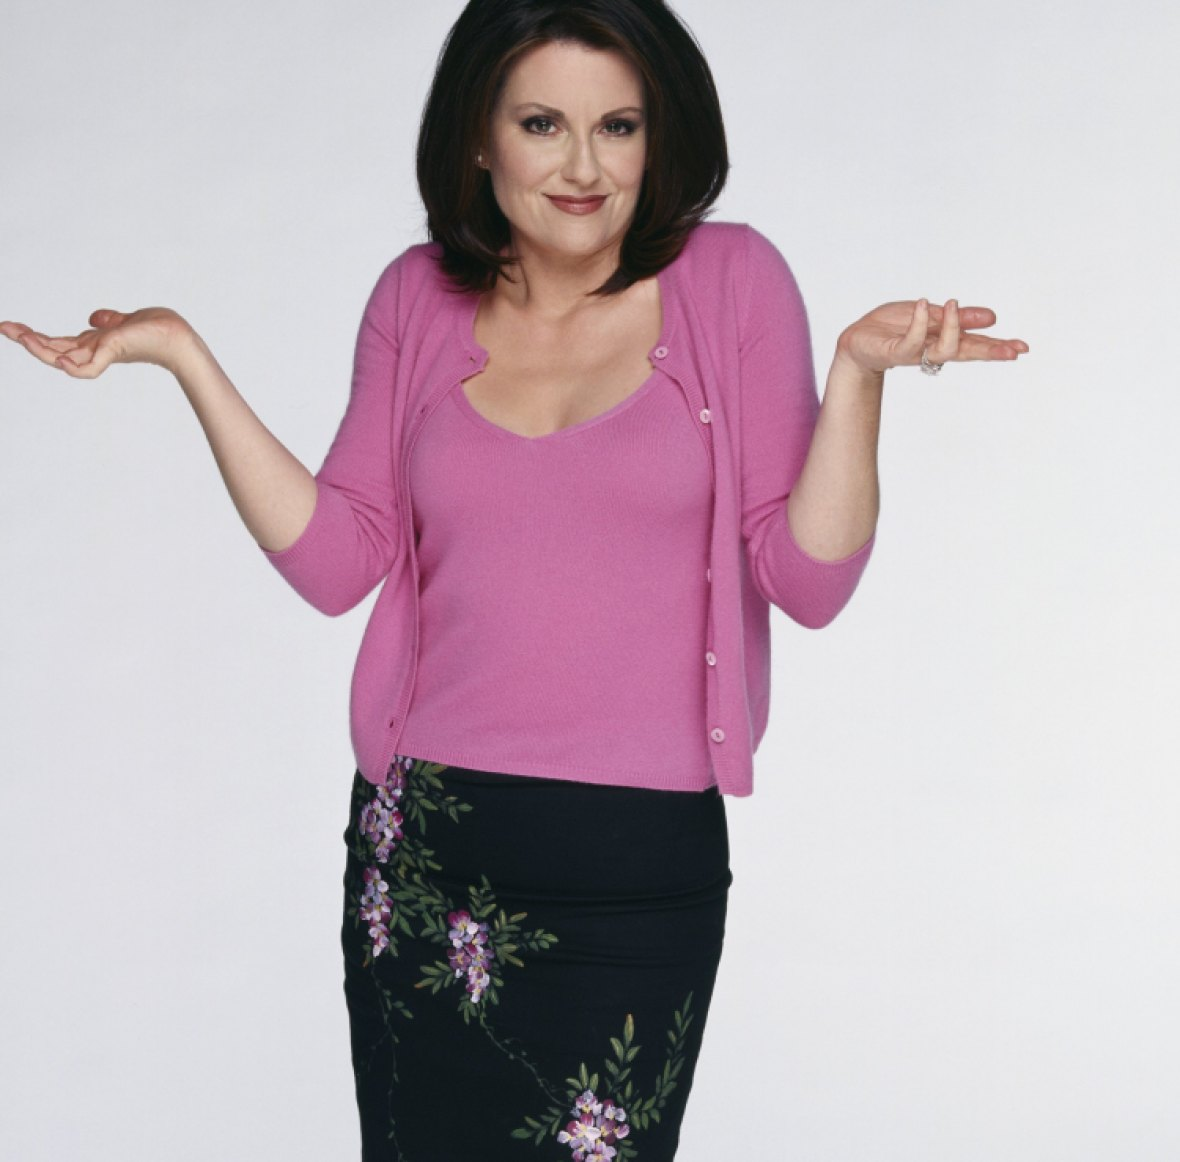 megan mullally 'will & grace' getty images